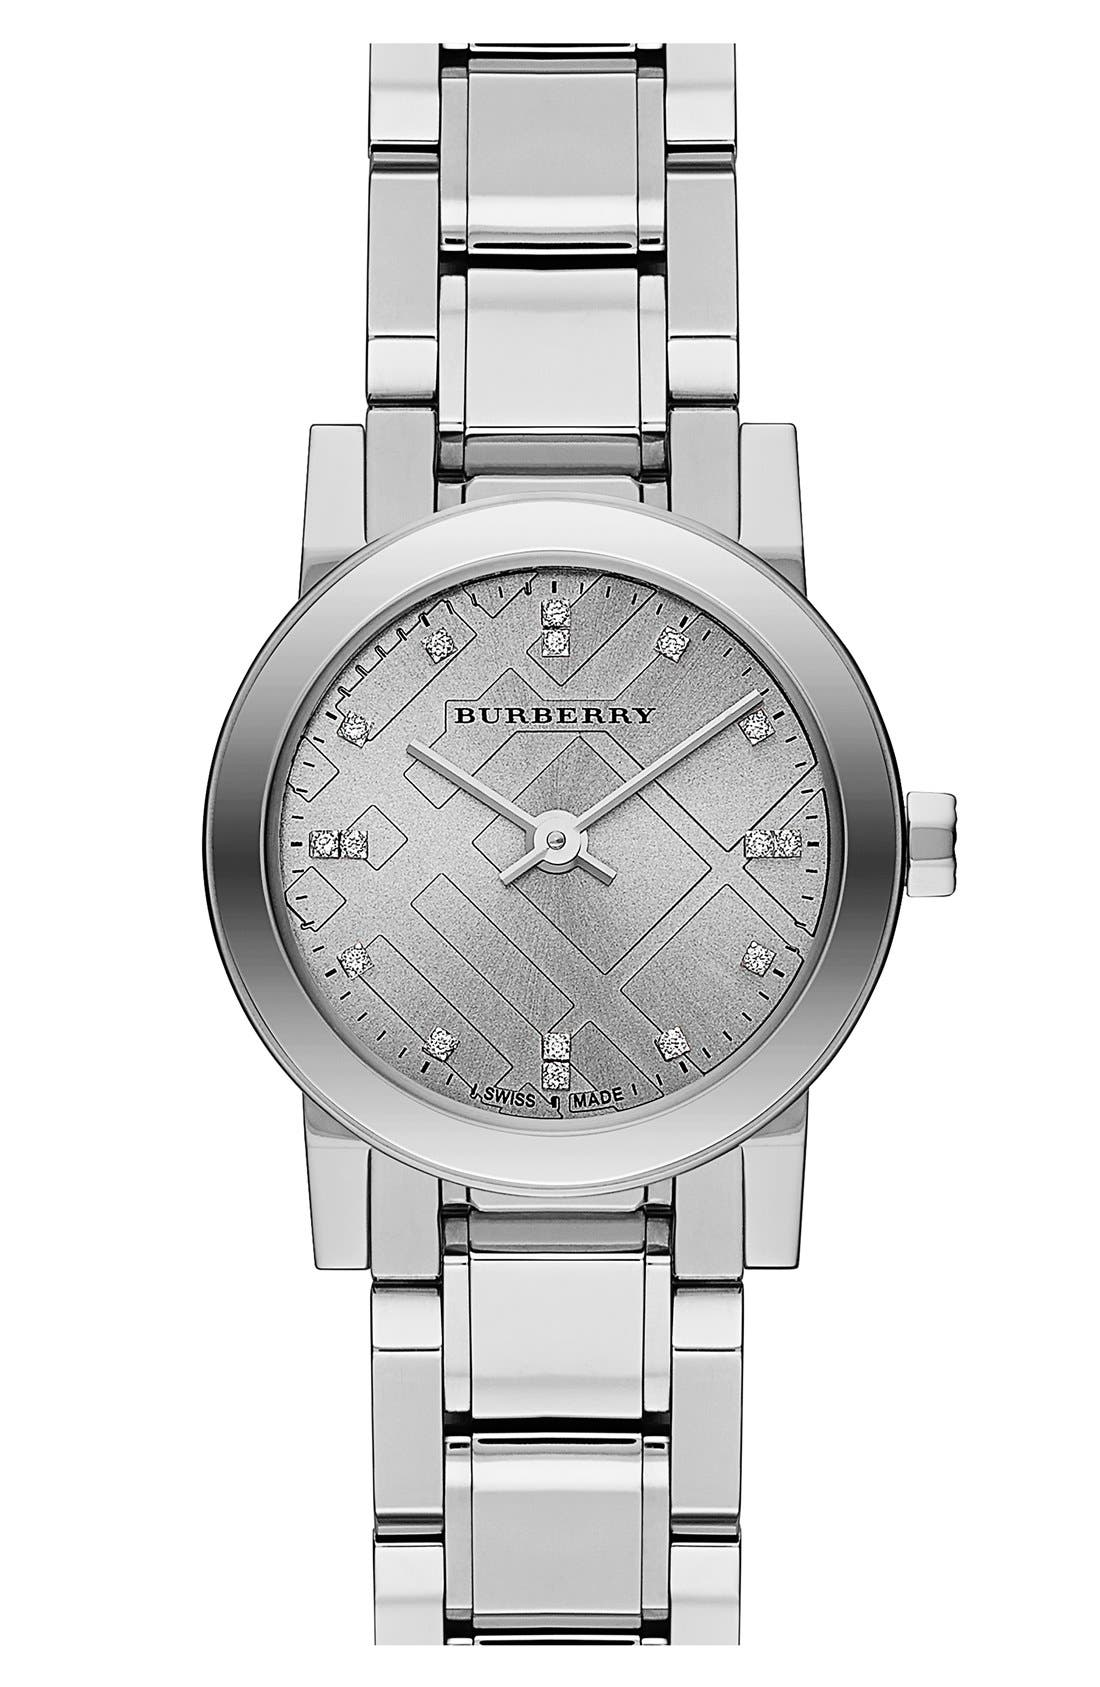 Main Image - Burberry 'New Classic' Small Diamond Dial Bracelet Watch, 26mm (Regular Retail Price: $695.00)